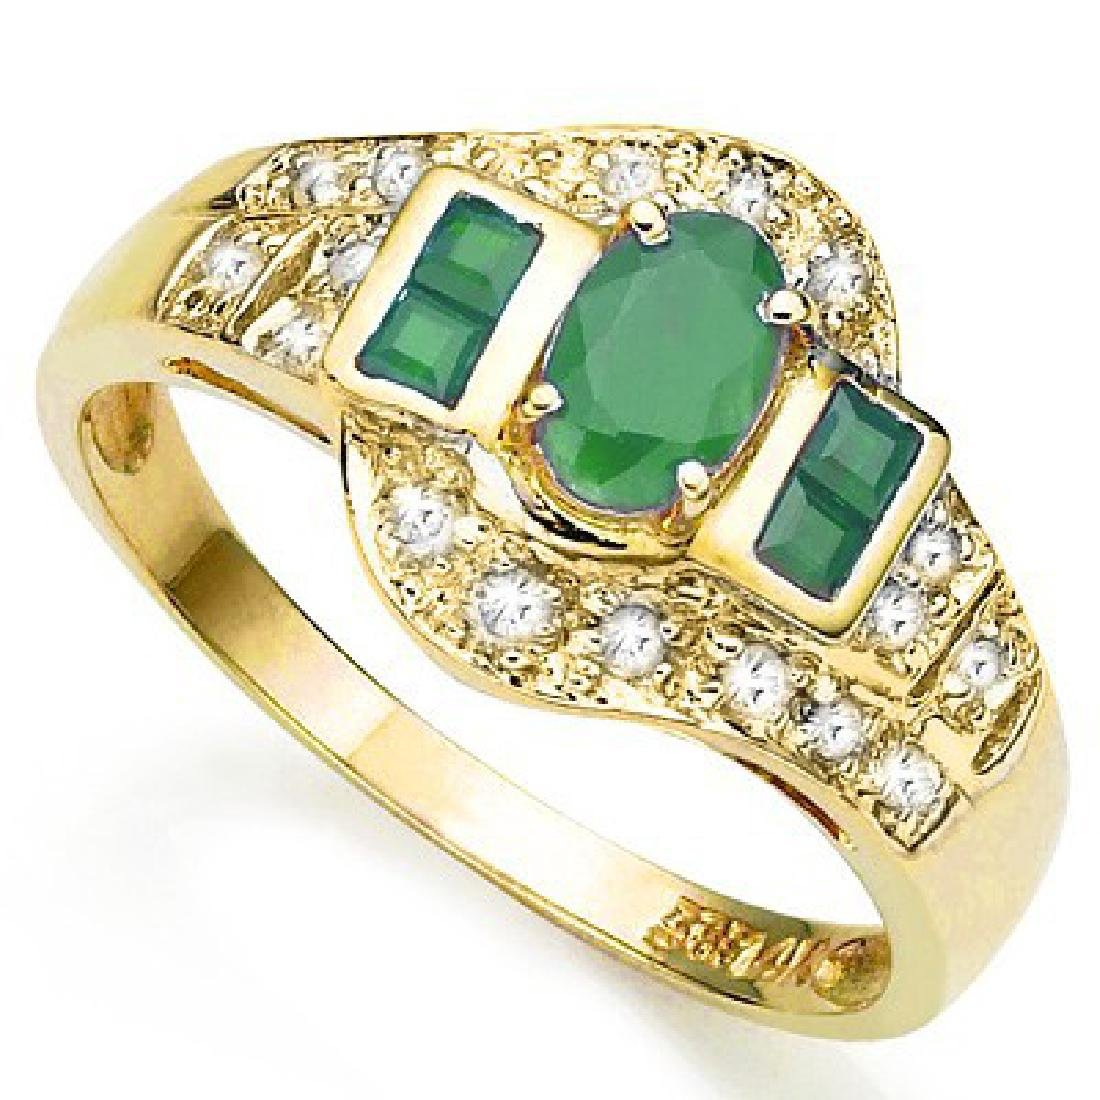 BEAUTIFUL 10K GOLD GENUINE EMERALD/DIAMOND RING